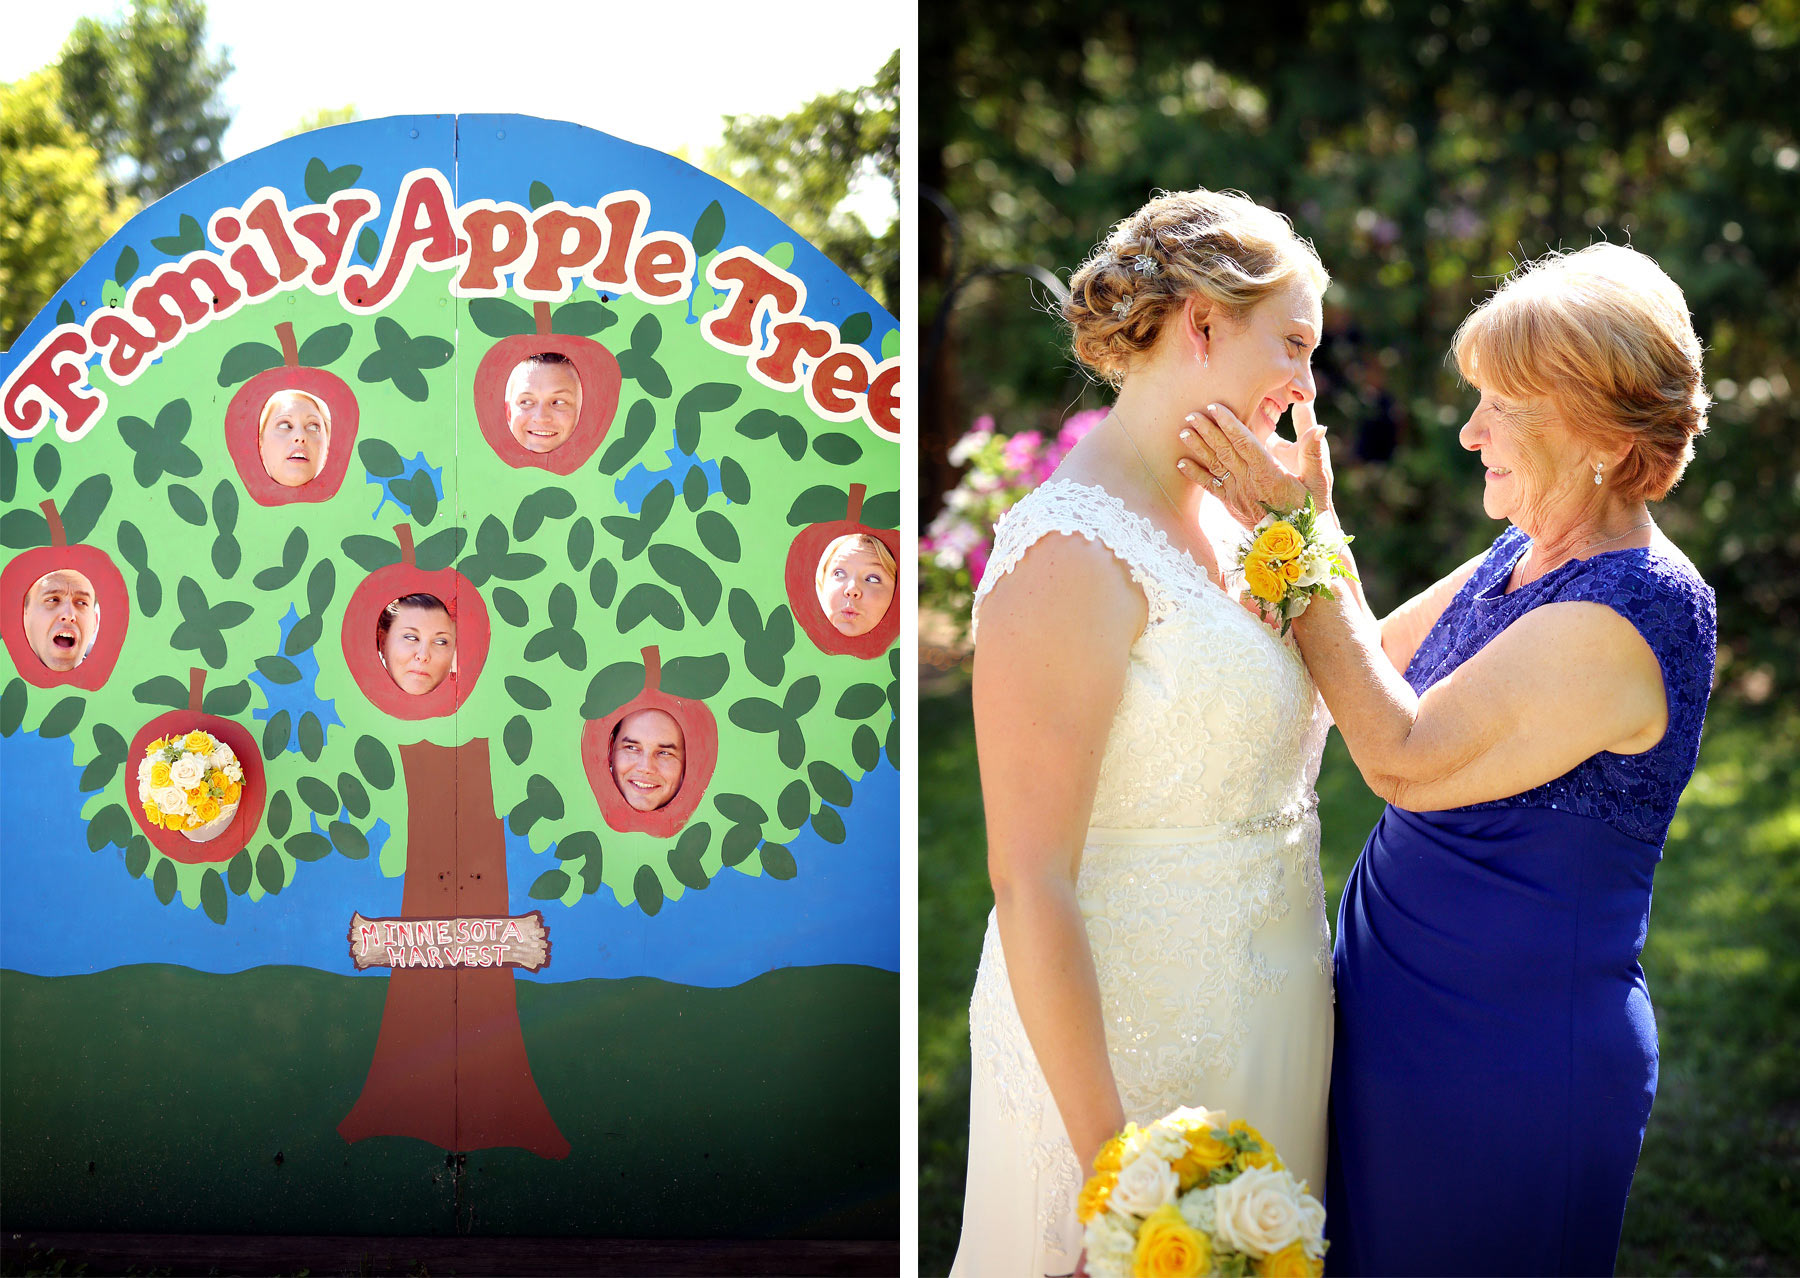 07-Minneapolis-Minnesota-Wedding-Photography-by-Vick-Photography-Minnesota-Harvest-Apple-Orchard-Emilie-&-Giovanni.jpg